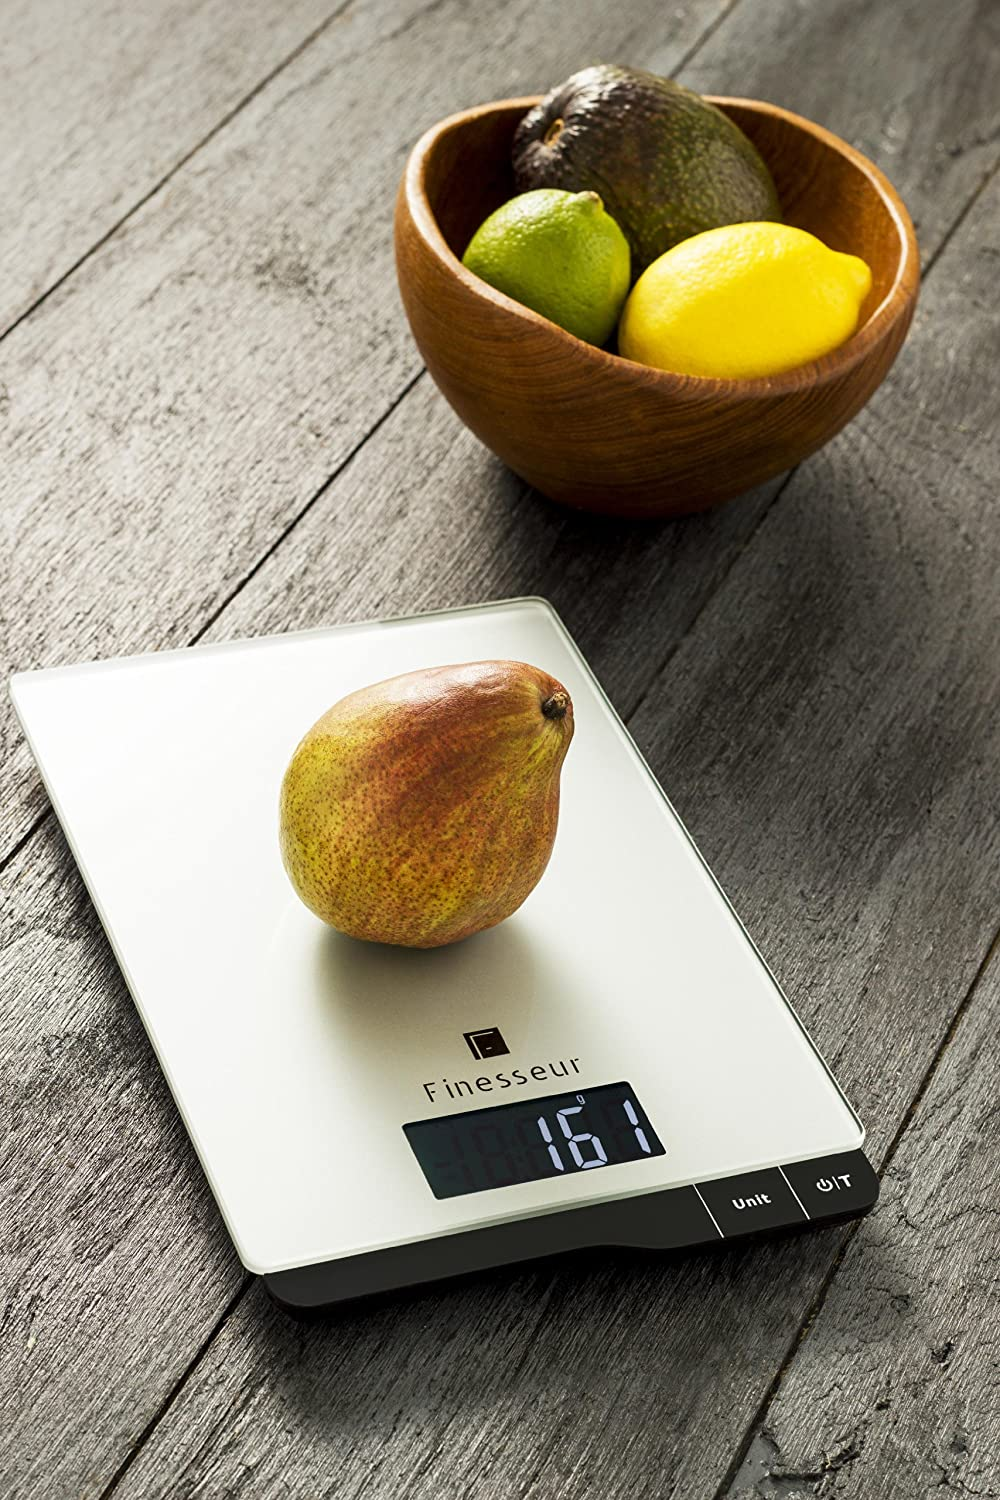 Best Digital Kitchen Scale For The Money